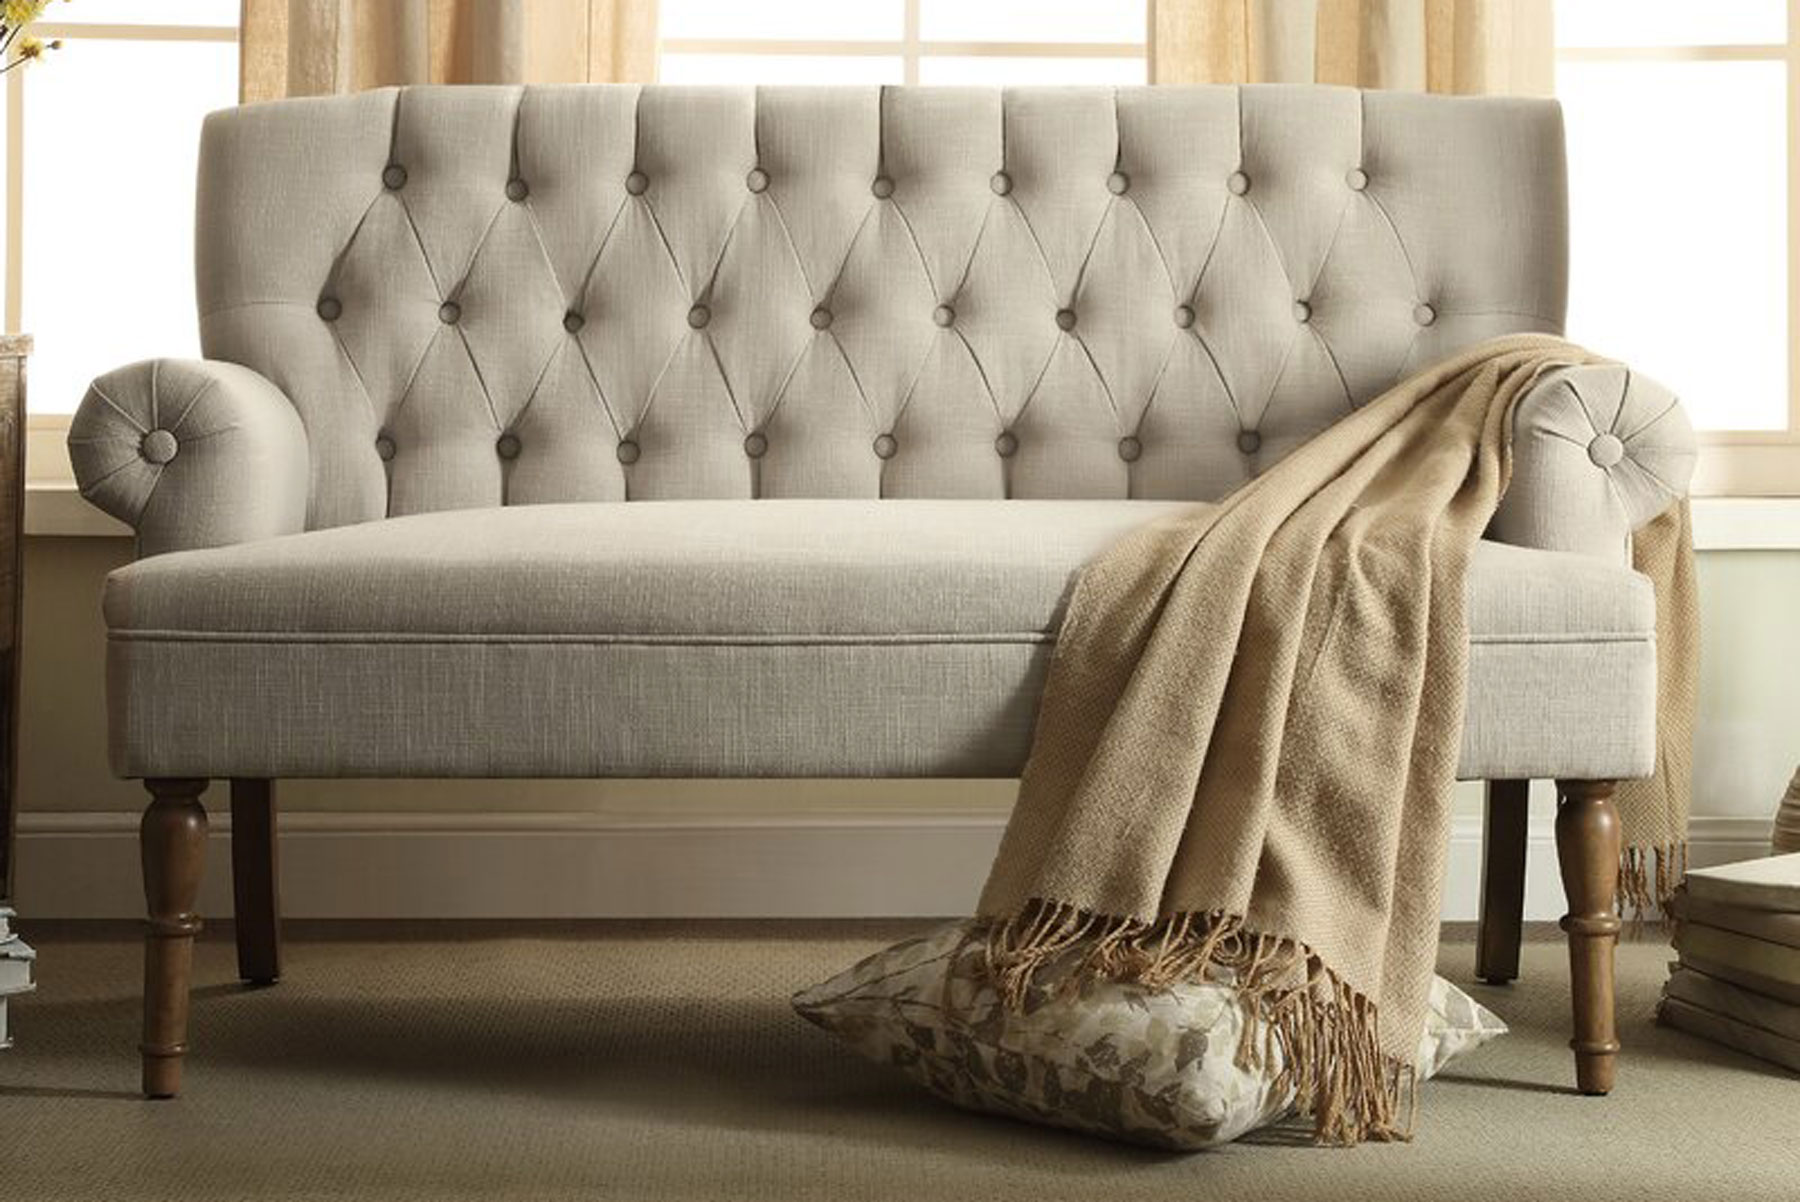 Tan sofa with blanket